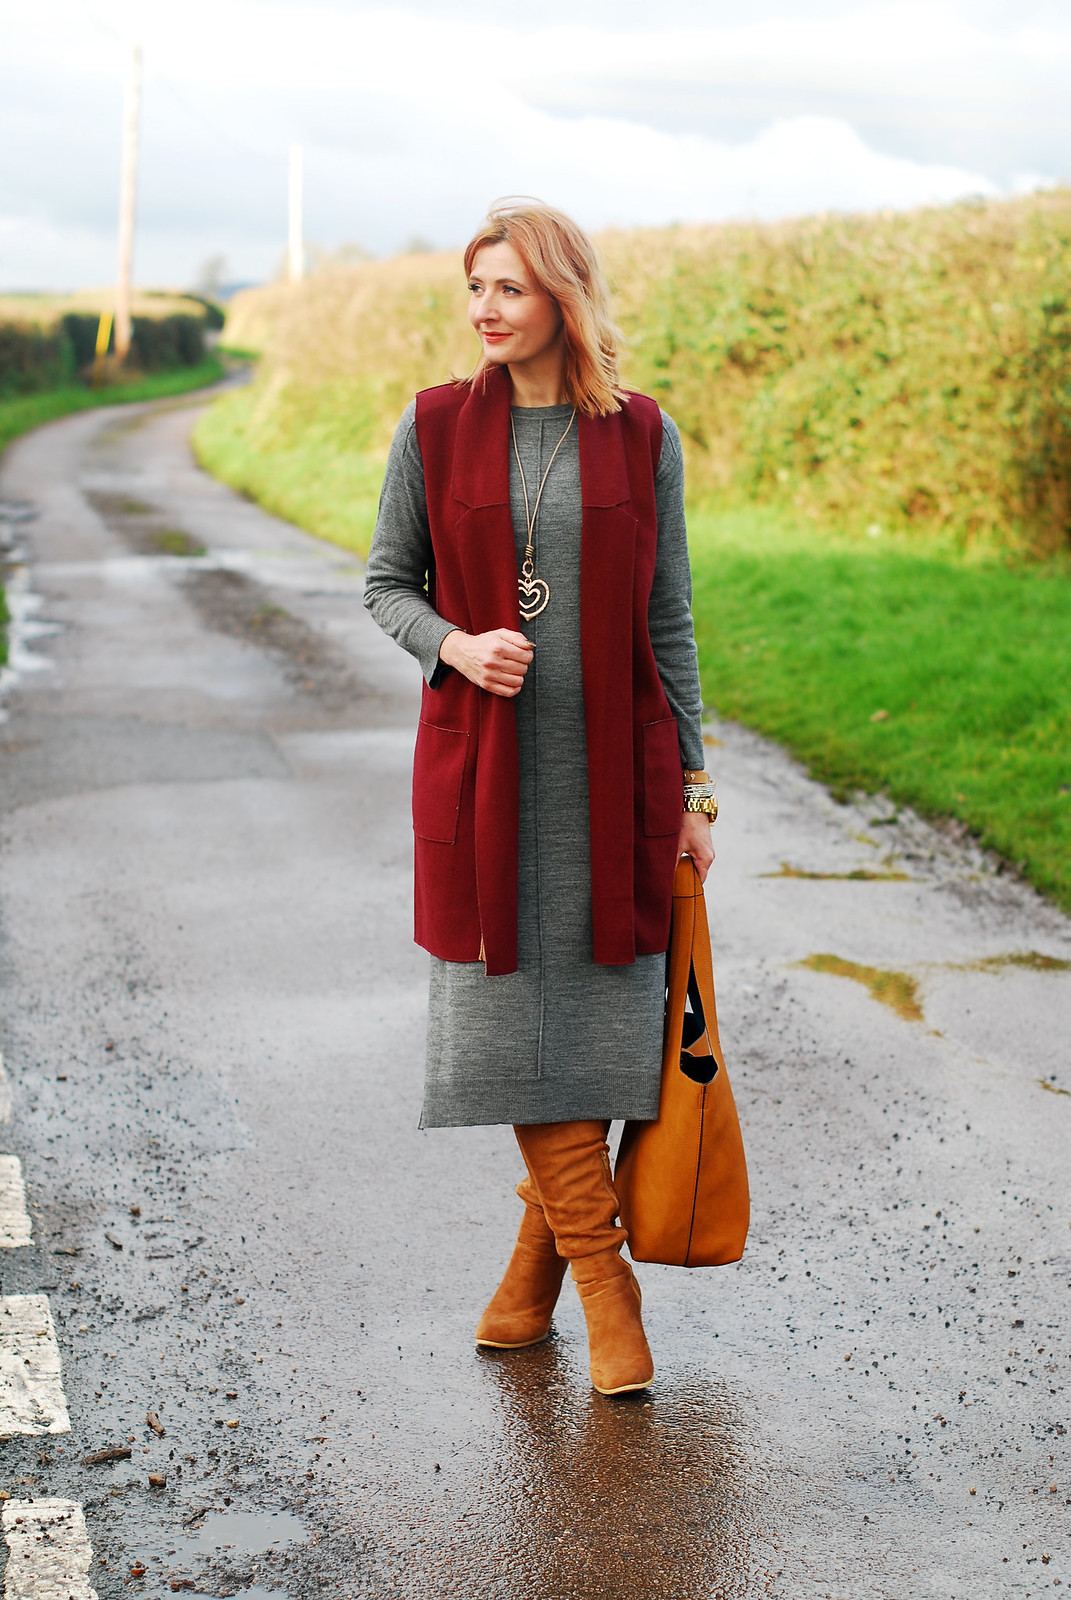 Winter layers: Burgundy sleeveless coatigan \ grey midi sweater dress \ tan over the knee (OTK) boots \ ochre slouch hobo bag \ rose gold heart pendant | Not Dressed As Lamb, over 40 style blog